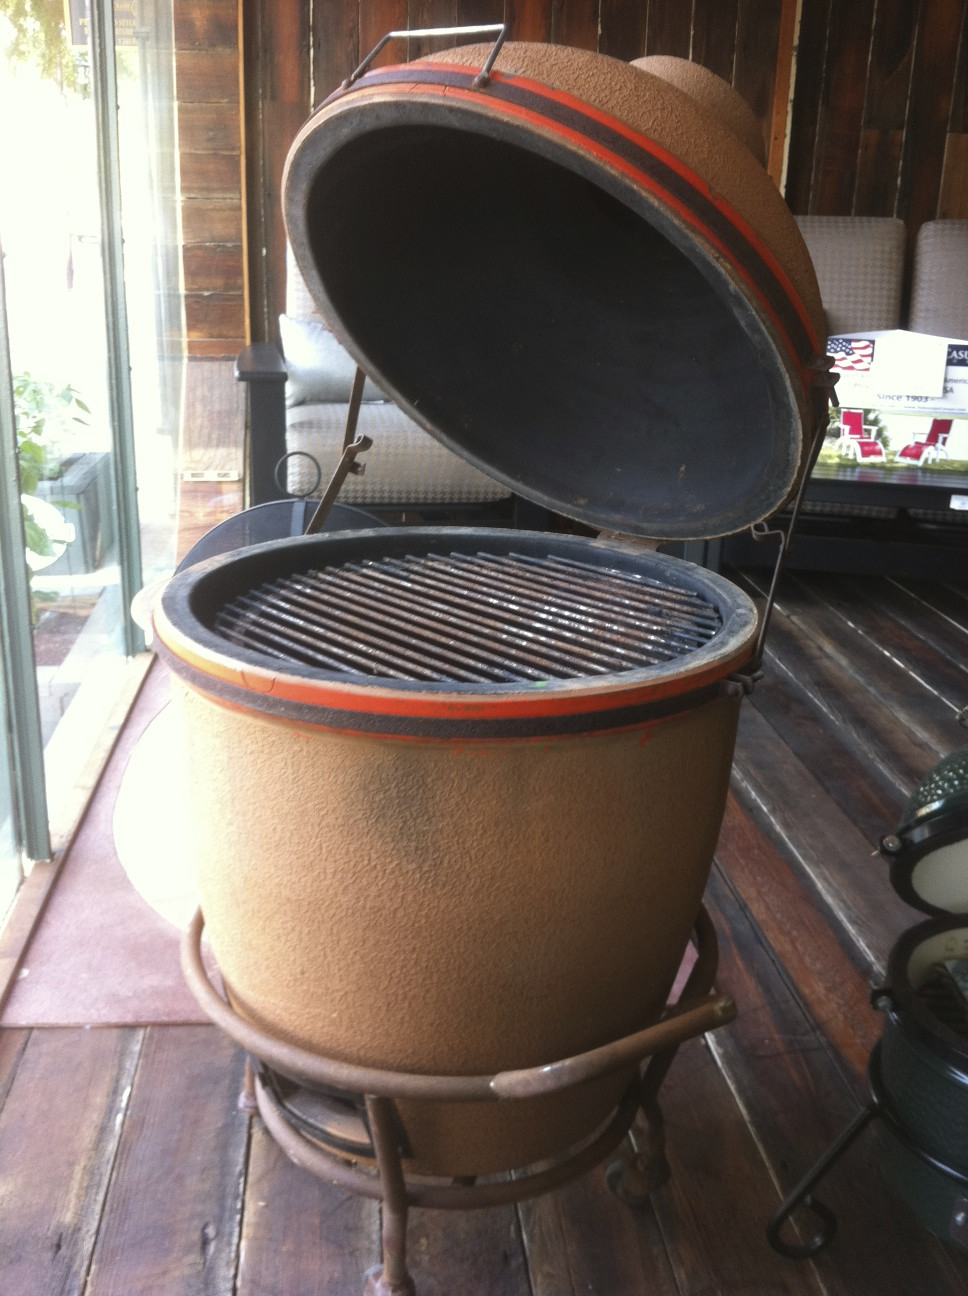 Original Big Green Egg From The Pachinco House Still Works Perfectly With All Original Parts See It At Fireside Outdoor Kitchens